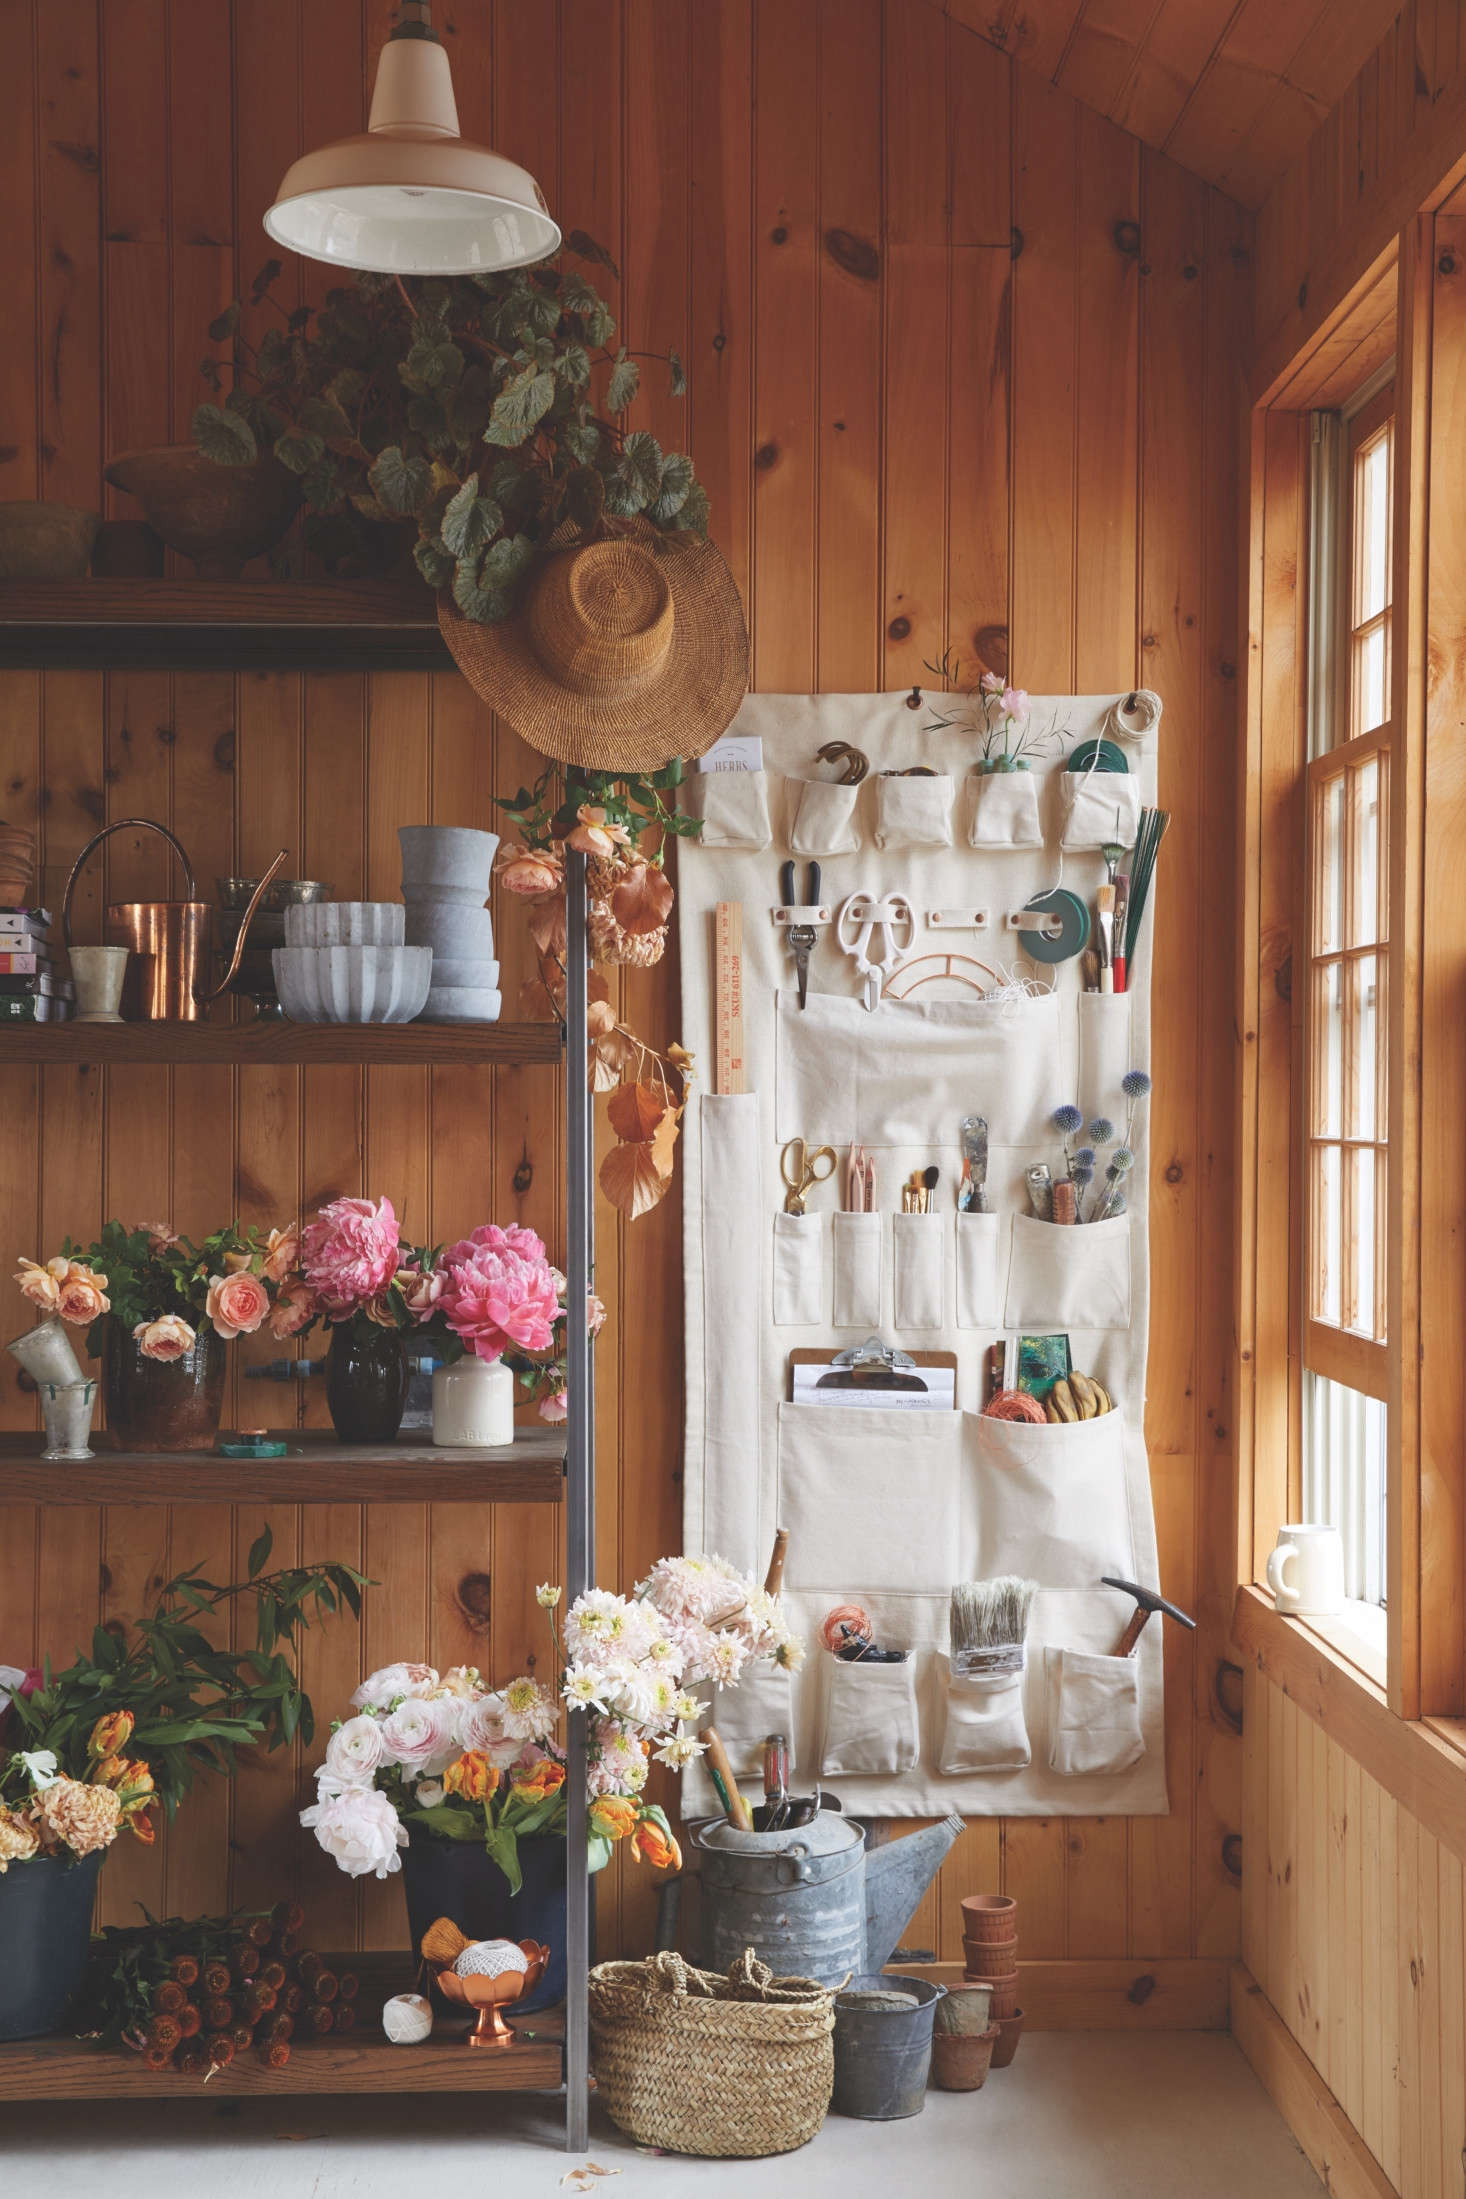 A cross between a gardening apron and a shoe pocket, The Floral Society Canvas Wall Organizer, $145.50, is a catchall that keeps tools tidy and within arm's reach. Steifman, who is a new mother, points out that it also works well in kids' rooms, as well as kitchens and offices.